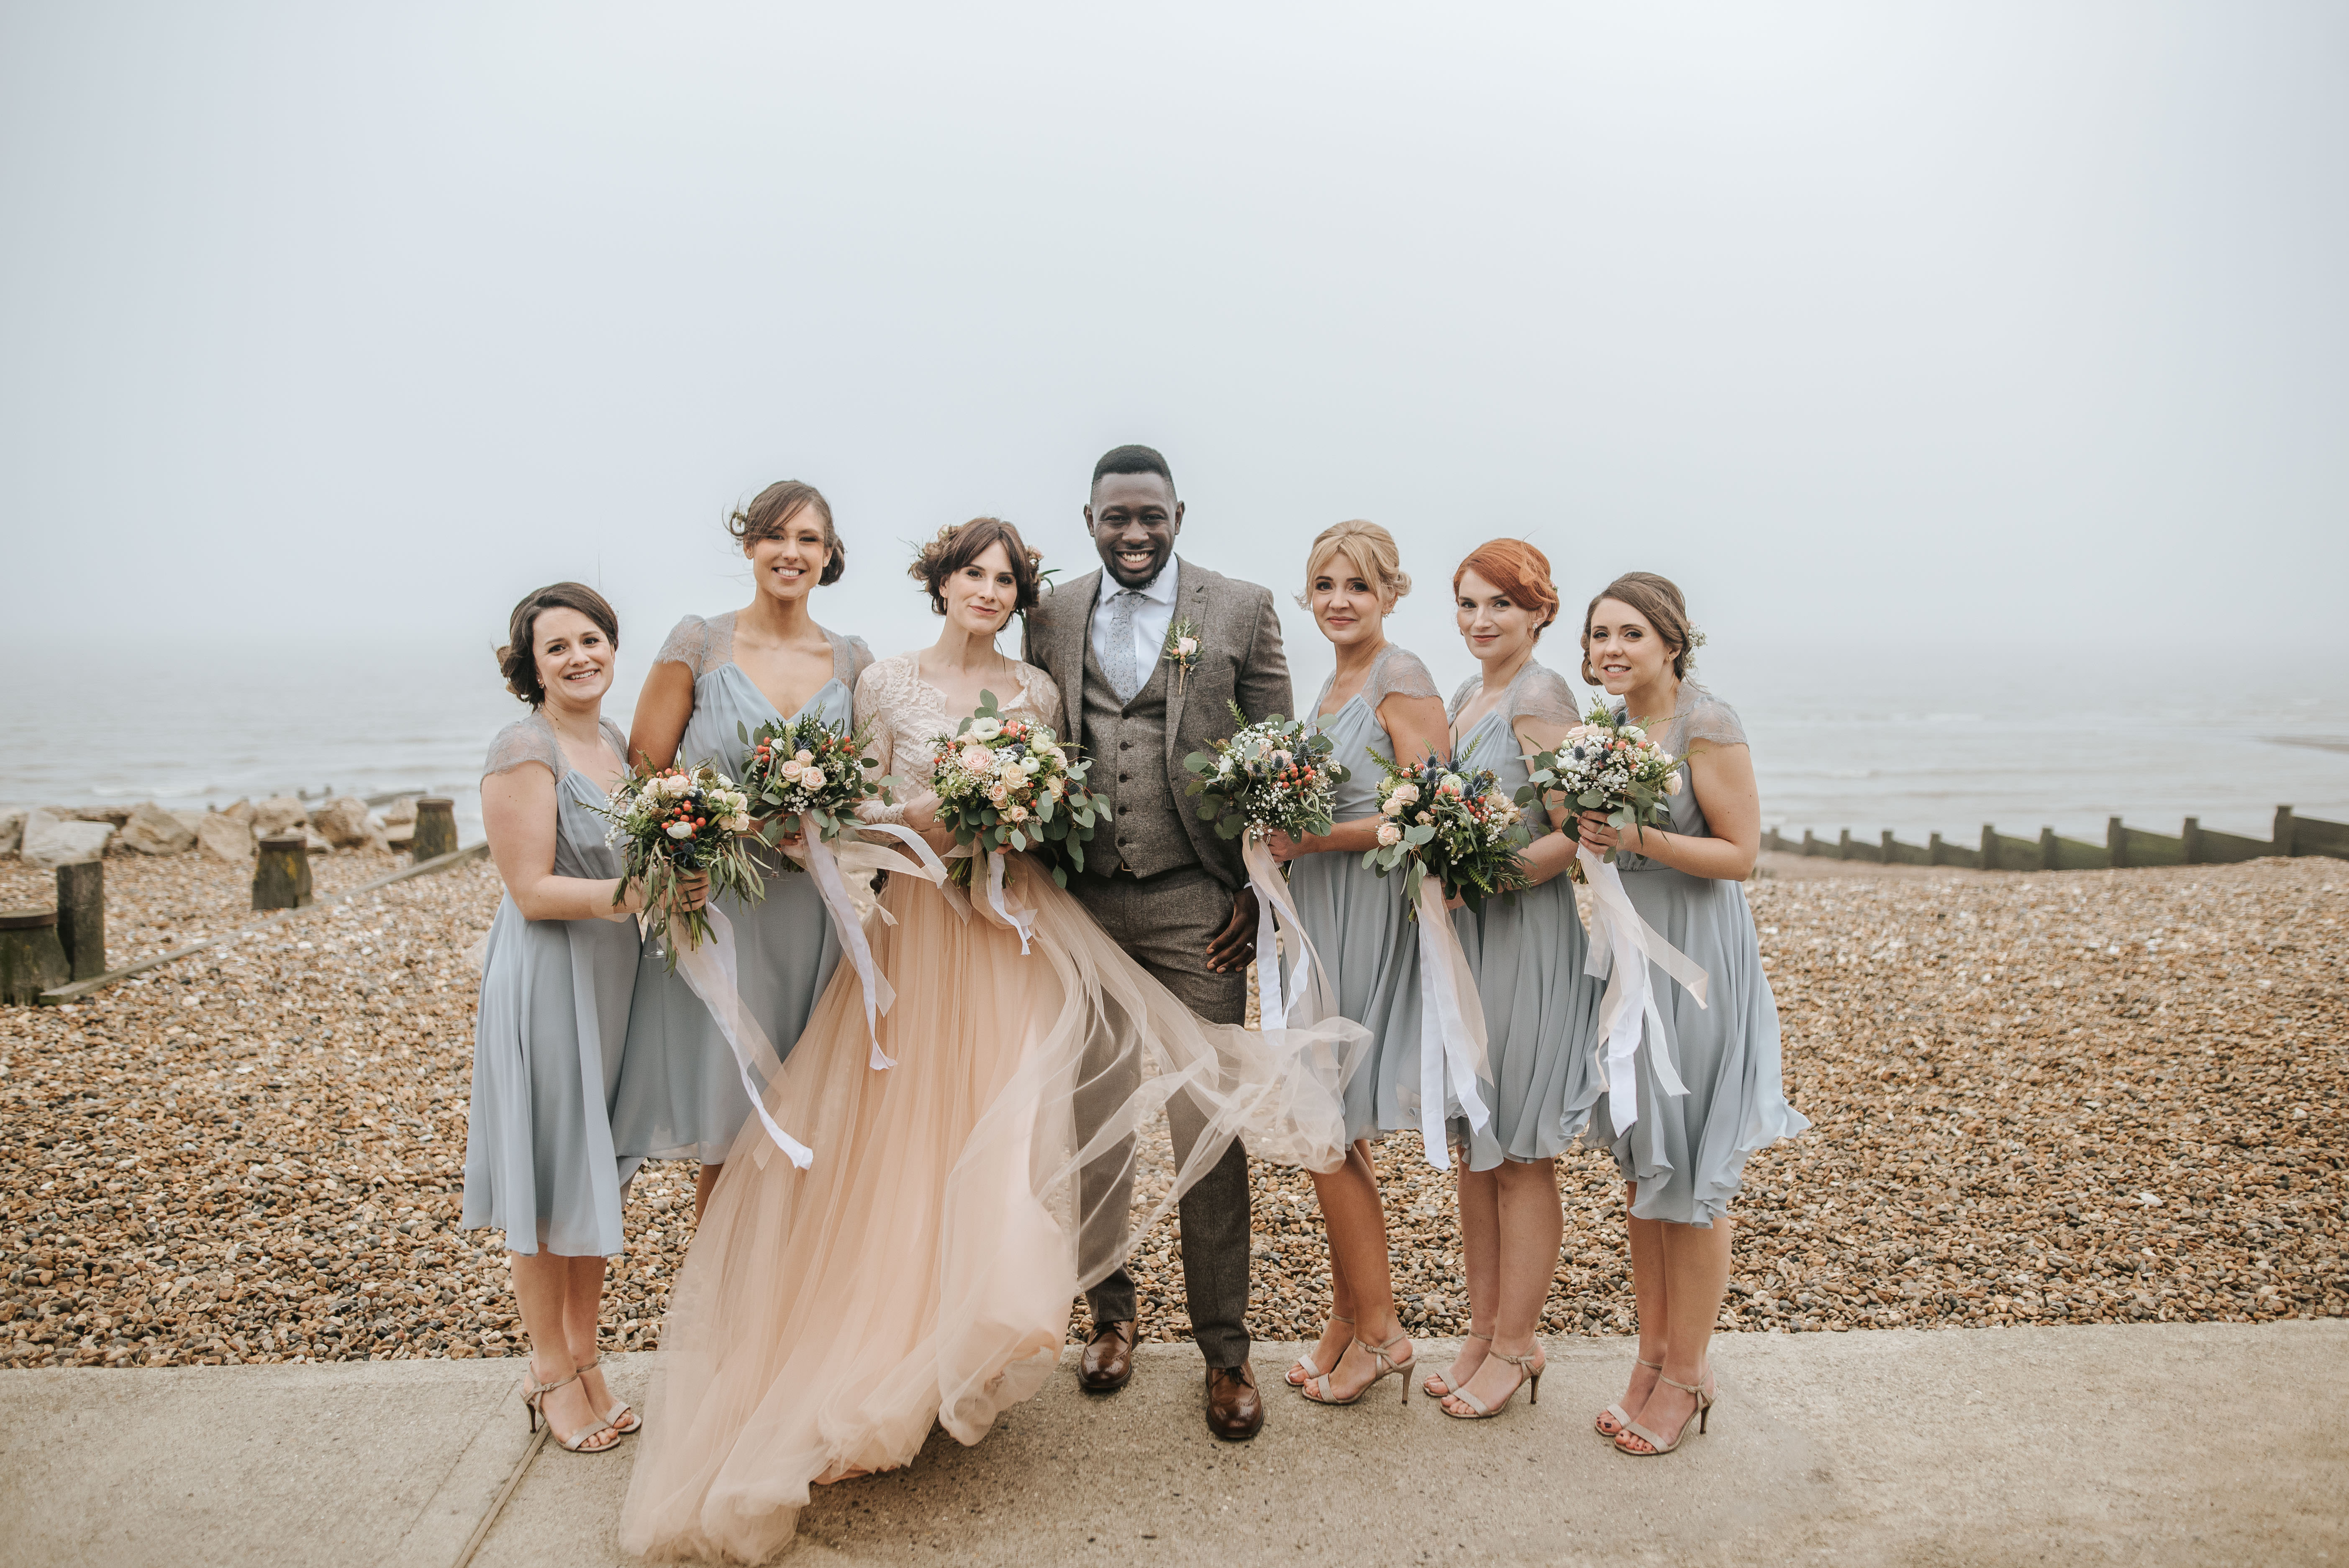 7ef3052c87c3 An Elizabeth Dye Gown in Peach Tulle for a Romantic and Whimsical Seaside  Wedding in Whitstable   Love My Dress® UK Wedding Blog + Wedding Directory